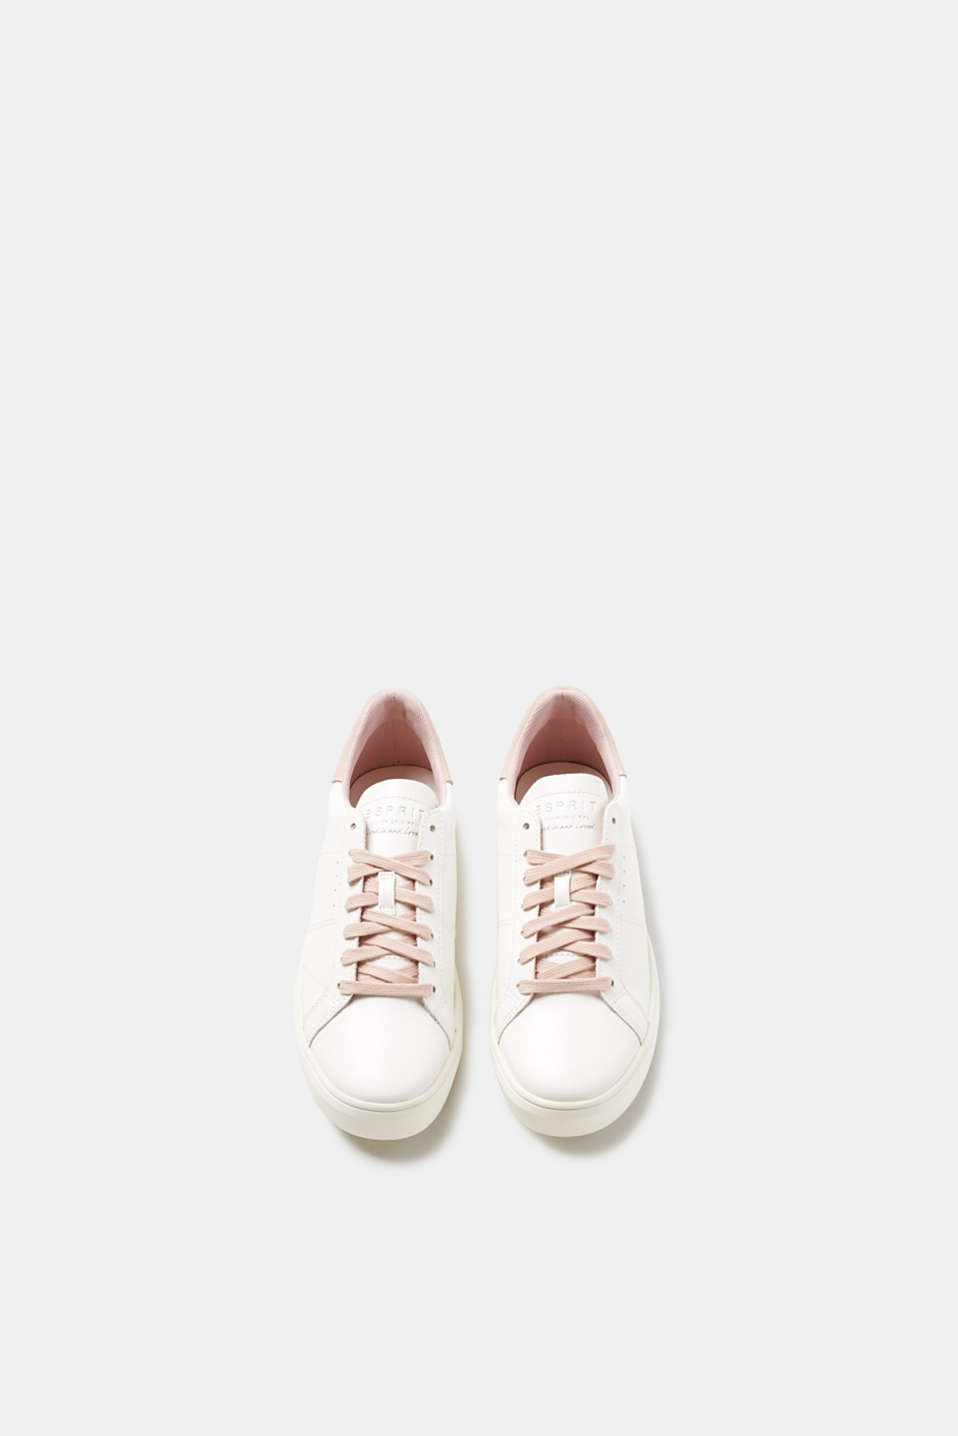 Trendy trainers with contrasting details